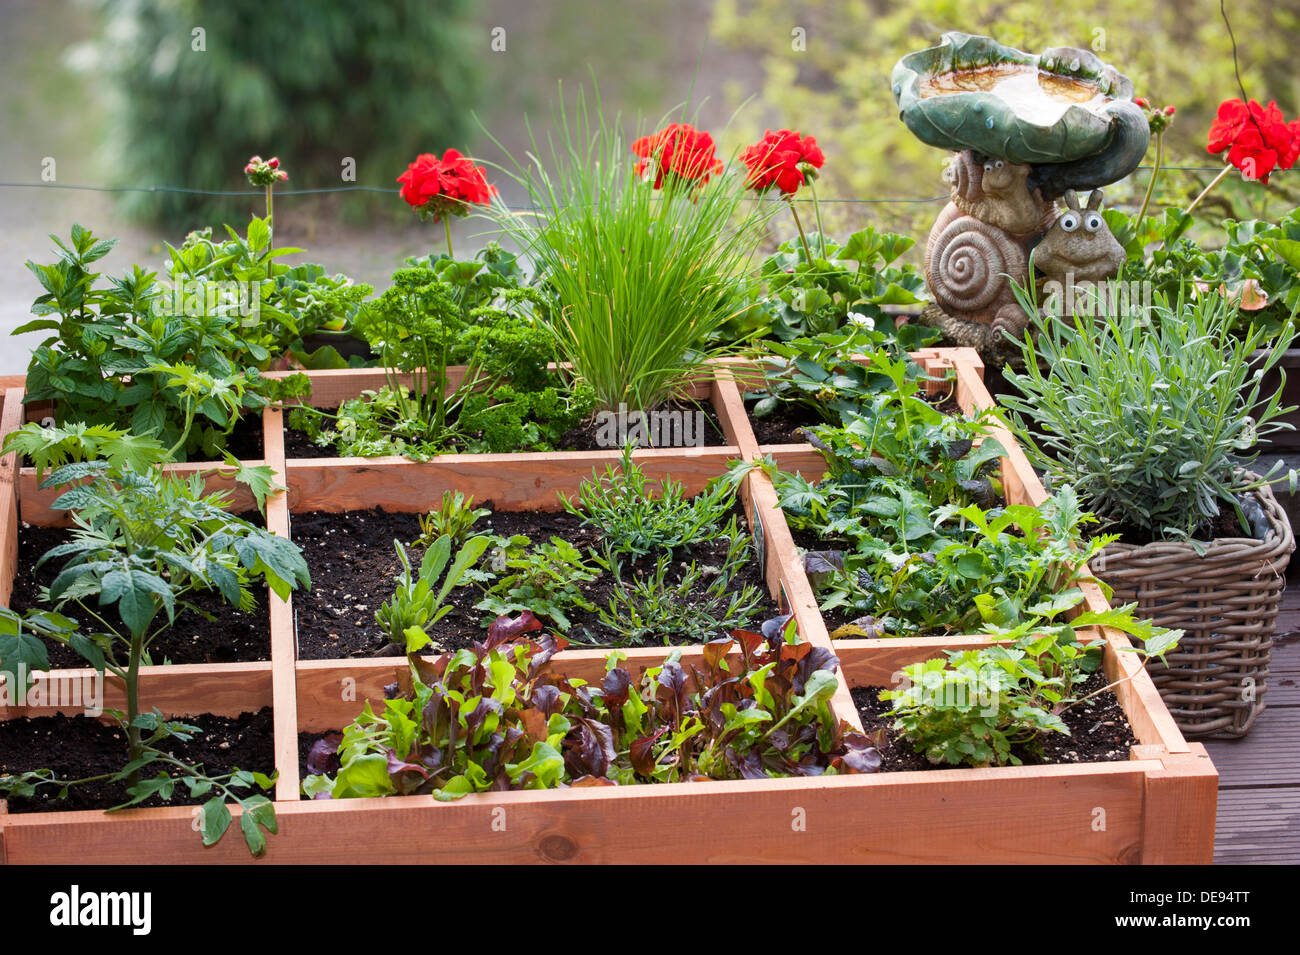 Square foot gardening by planting flowers herbs and vegetables in stock photo 60437688 alamy Flowers to plant in vegetable garden